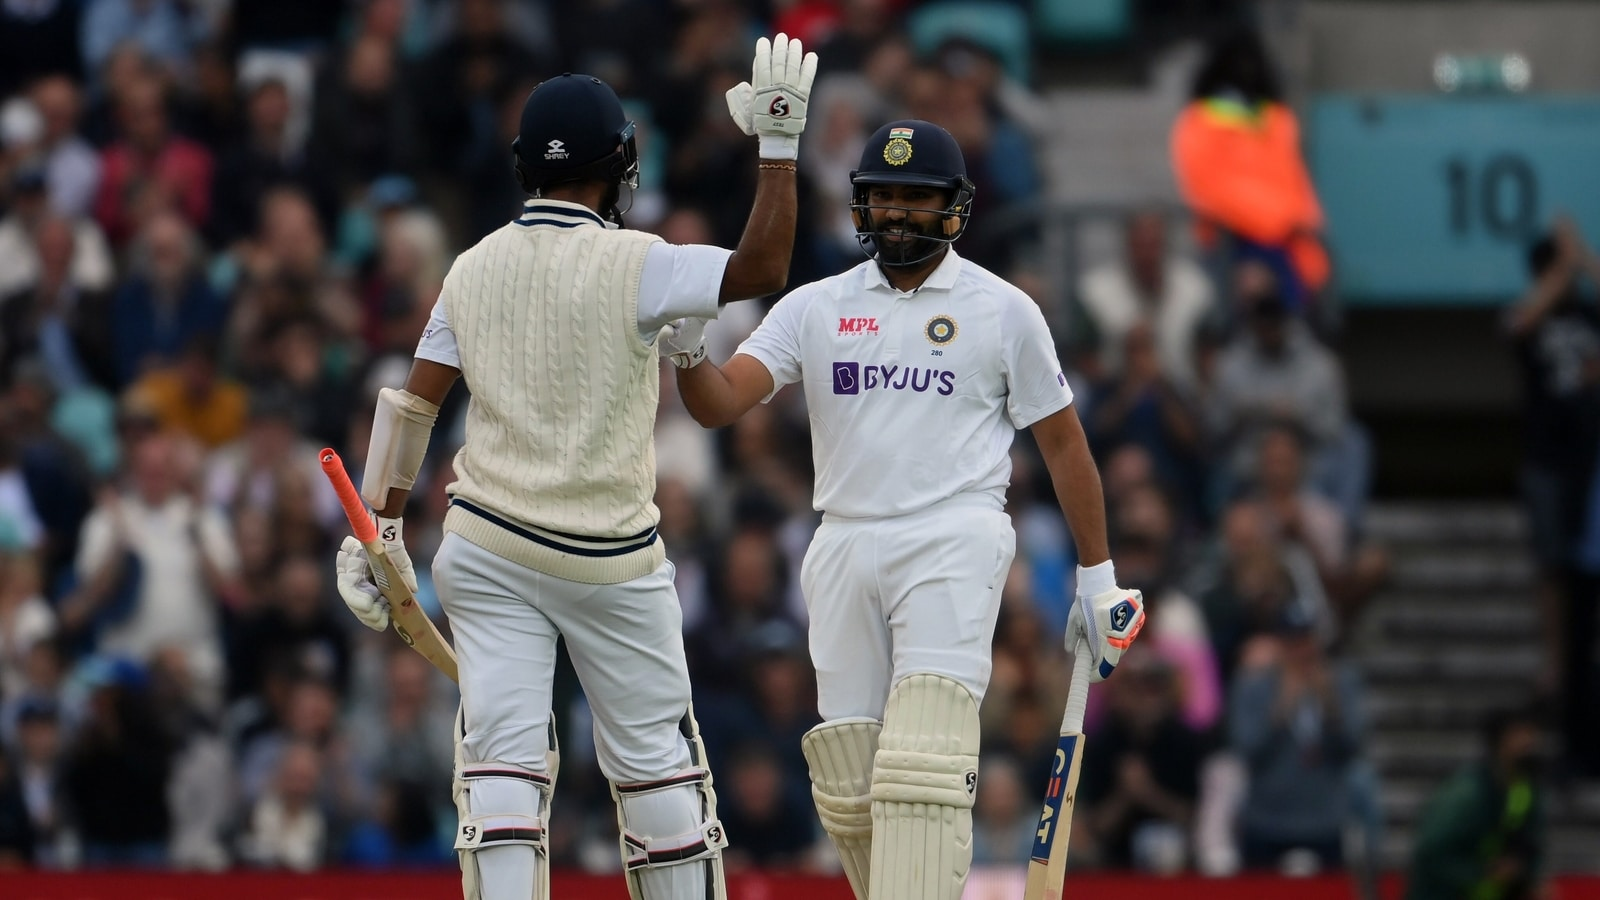 India vs England Highlights, 4th Test, Day 3: Rohit century leads the way as India lead England by 171 runs at stumps